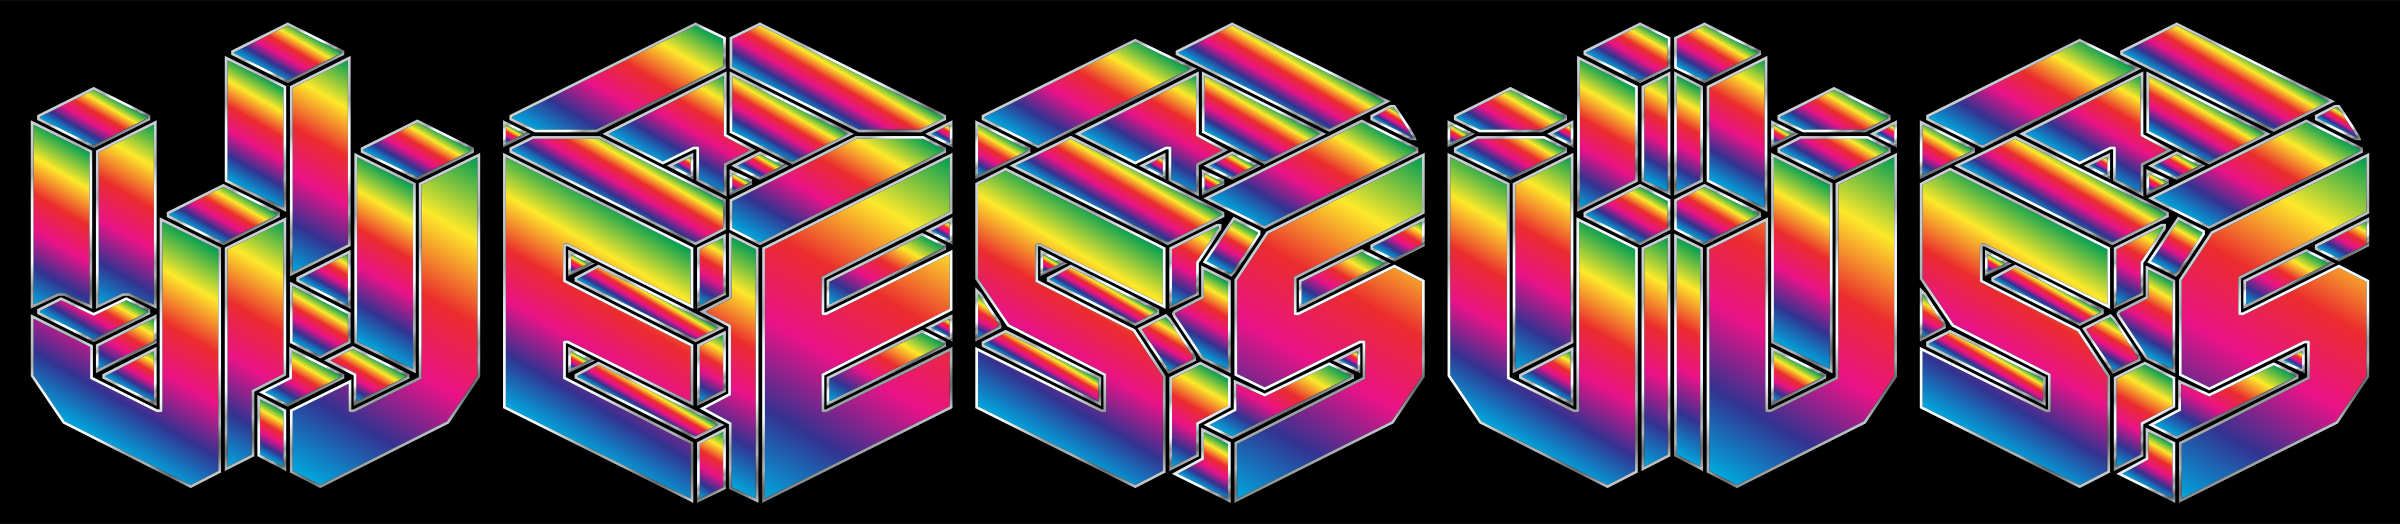 Prismatic 3D Isometric Jesus Typography by GDJ